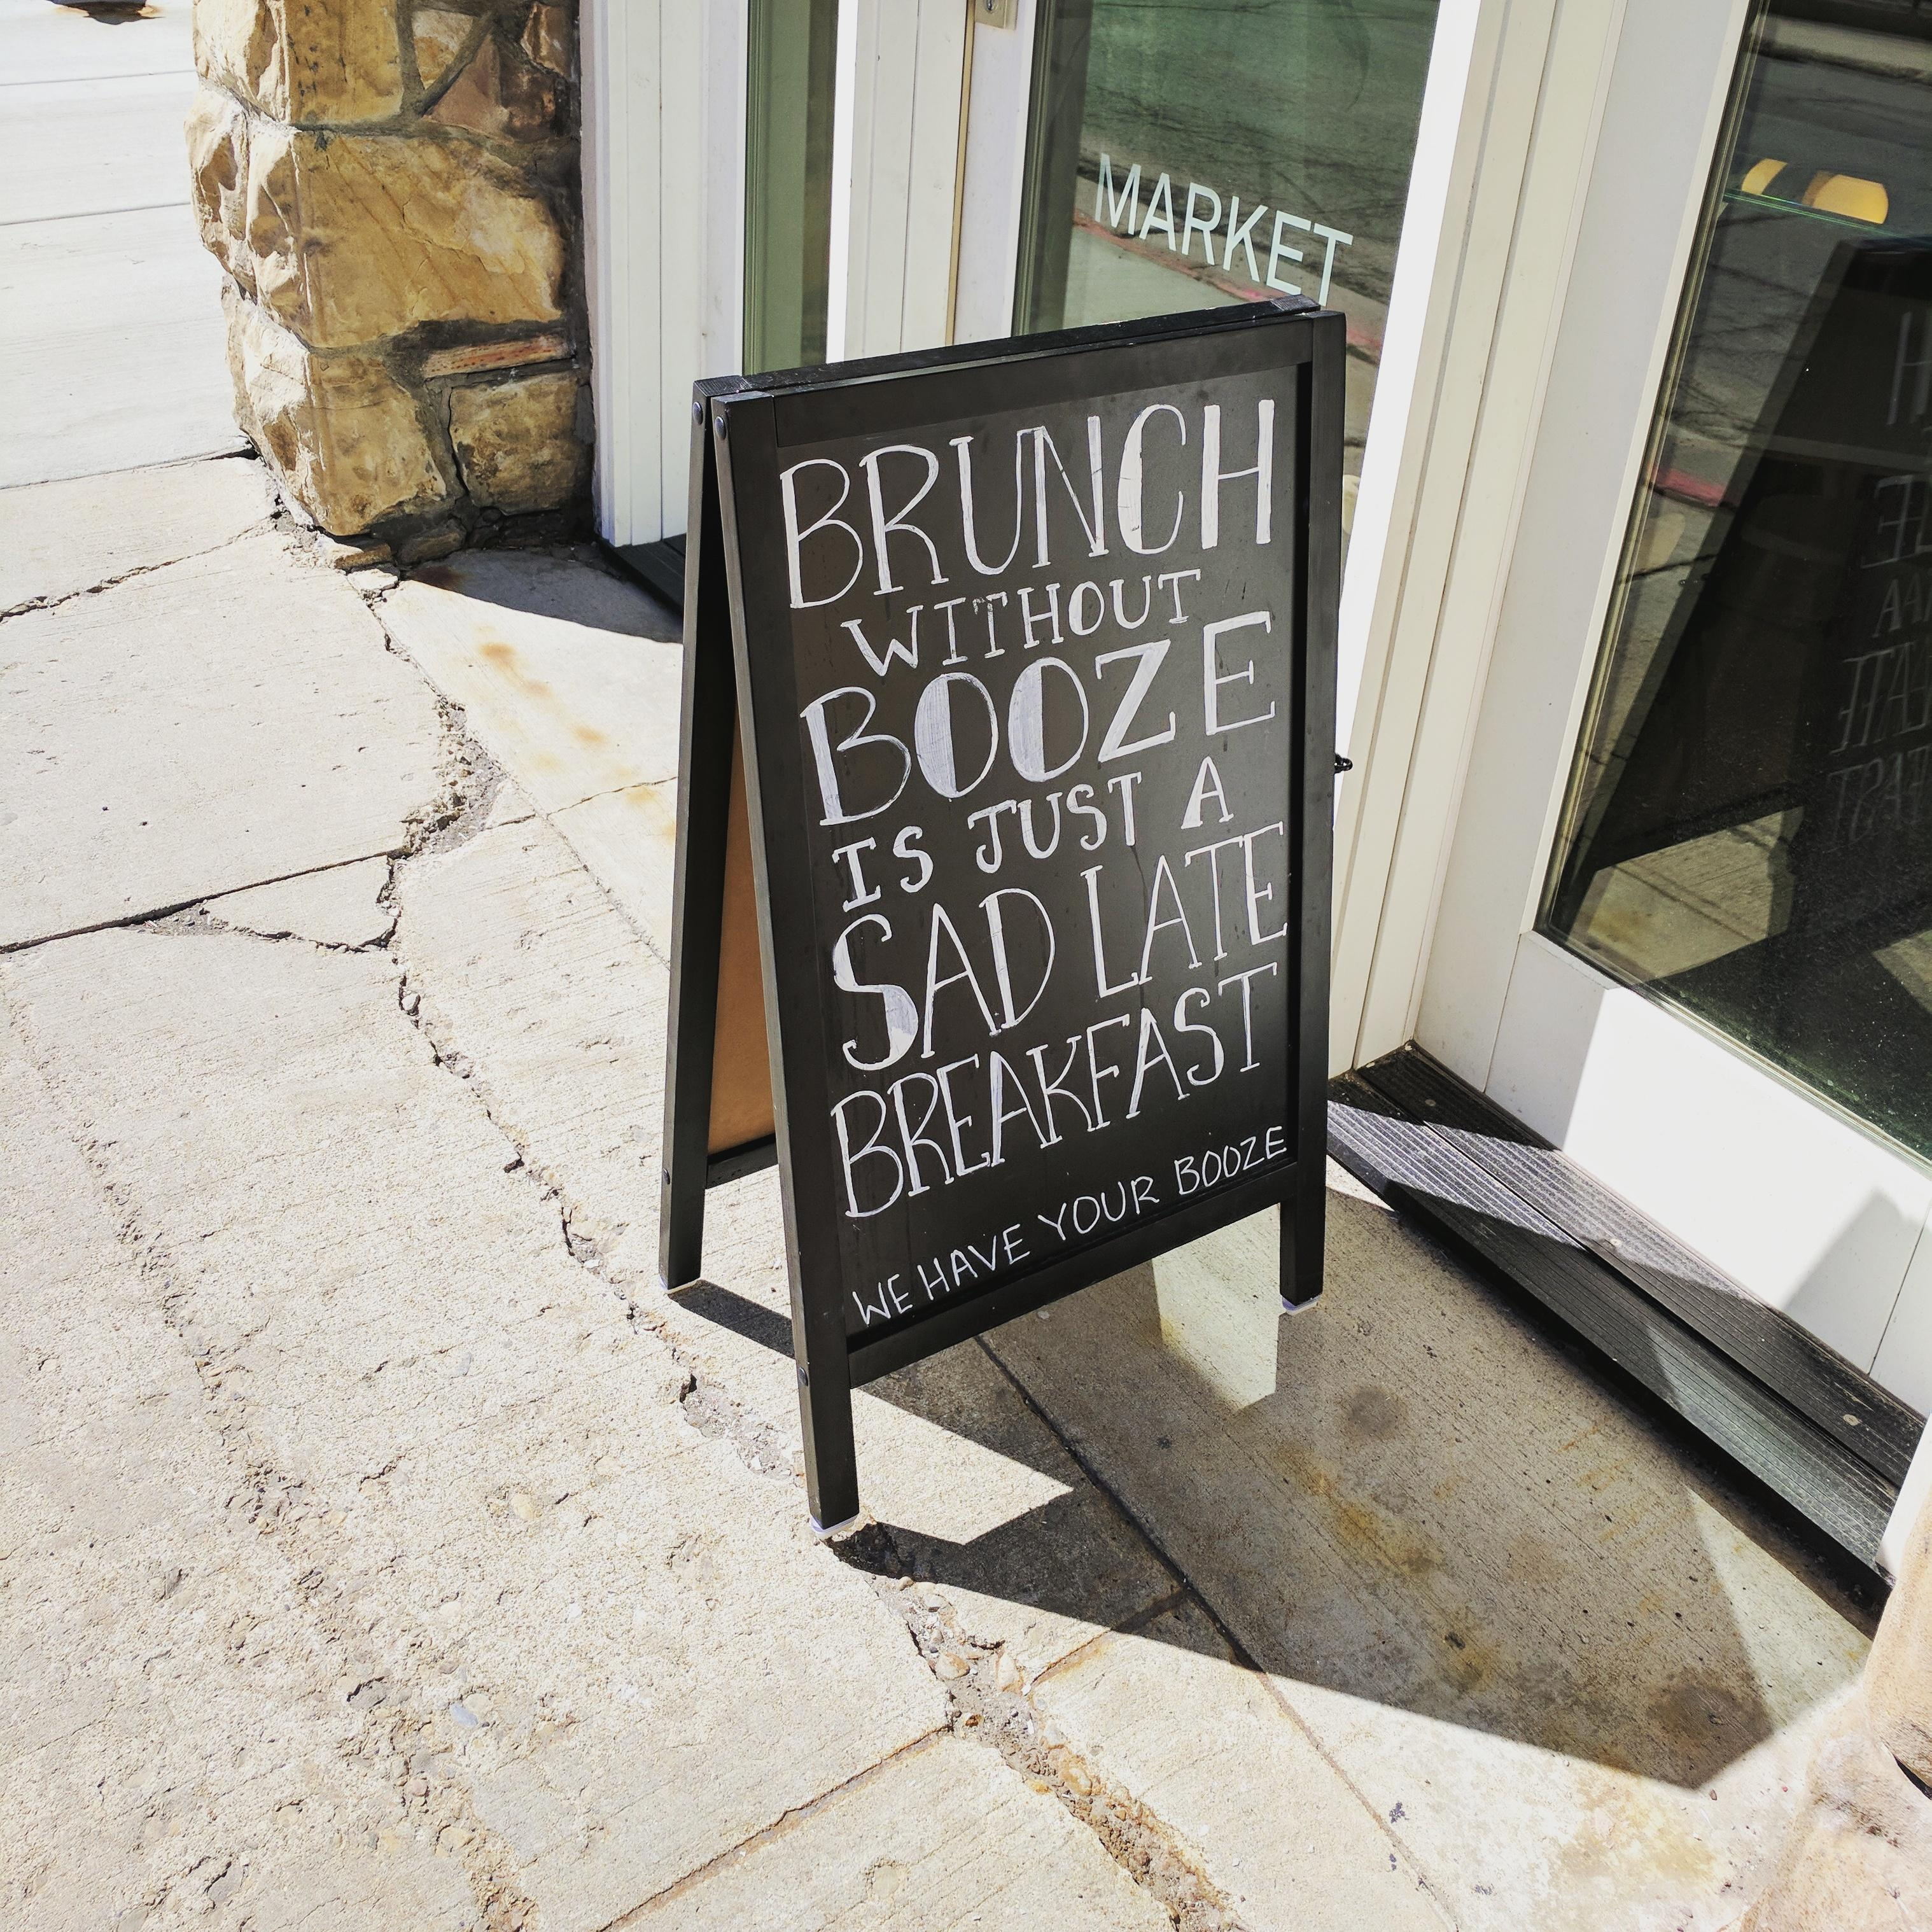 Brunch without booze…